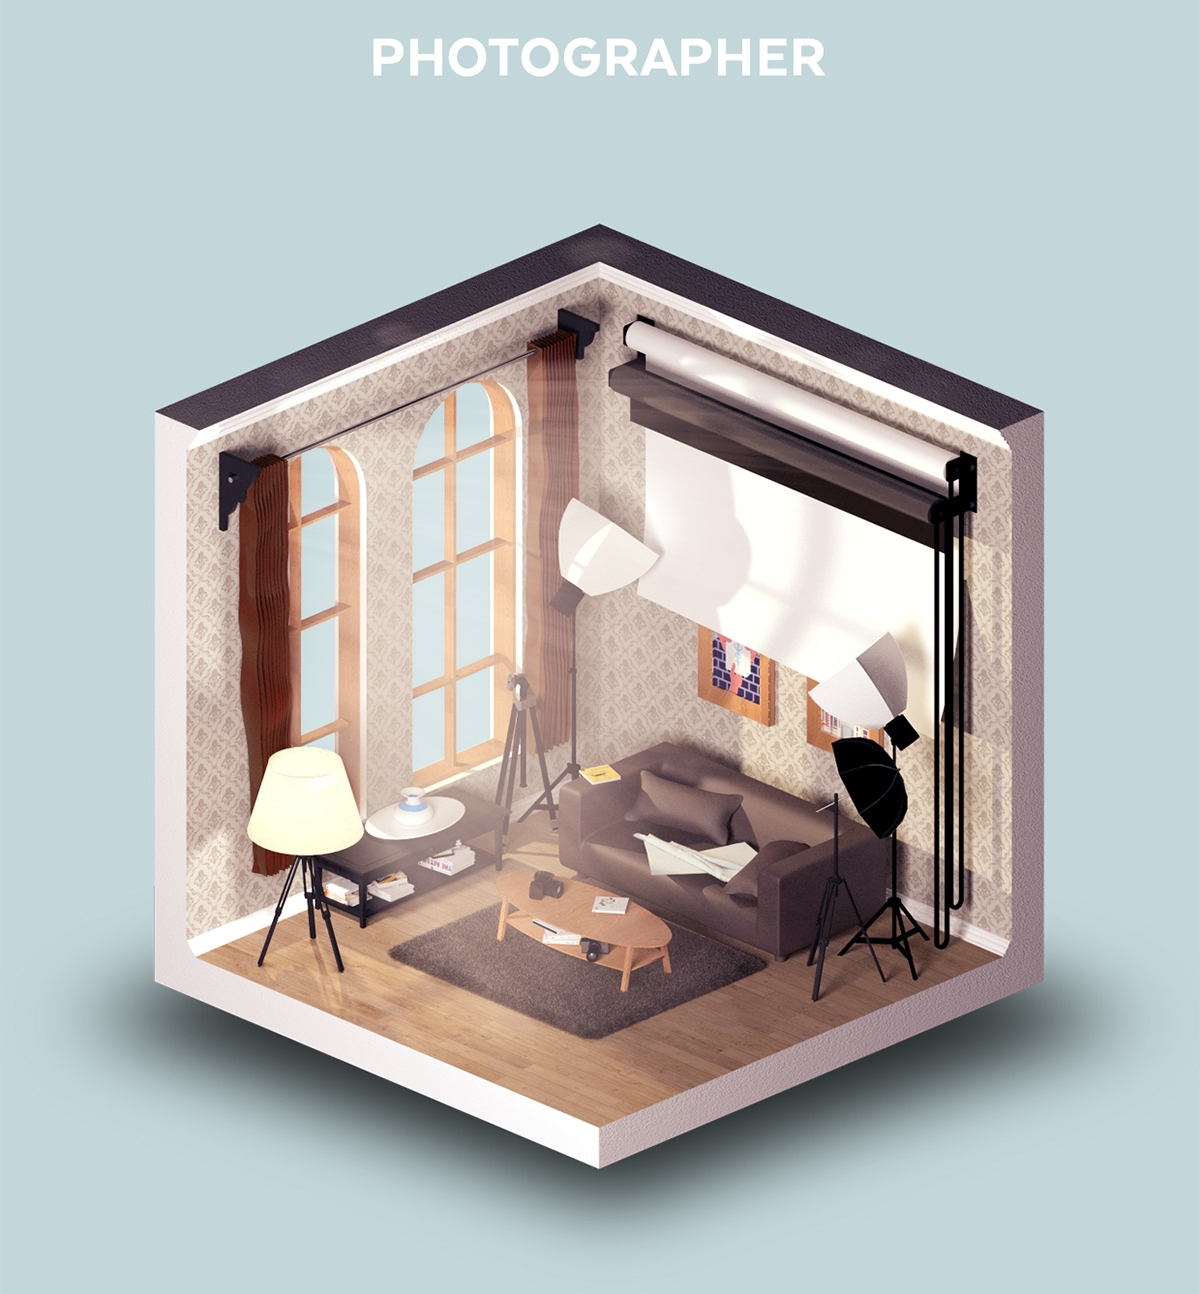 04-Room-of-a-Photographer-Petr-Kollarcik-Digital-Interiors-Design-and-Modern-Nomads-illustrations-www-designstack-co